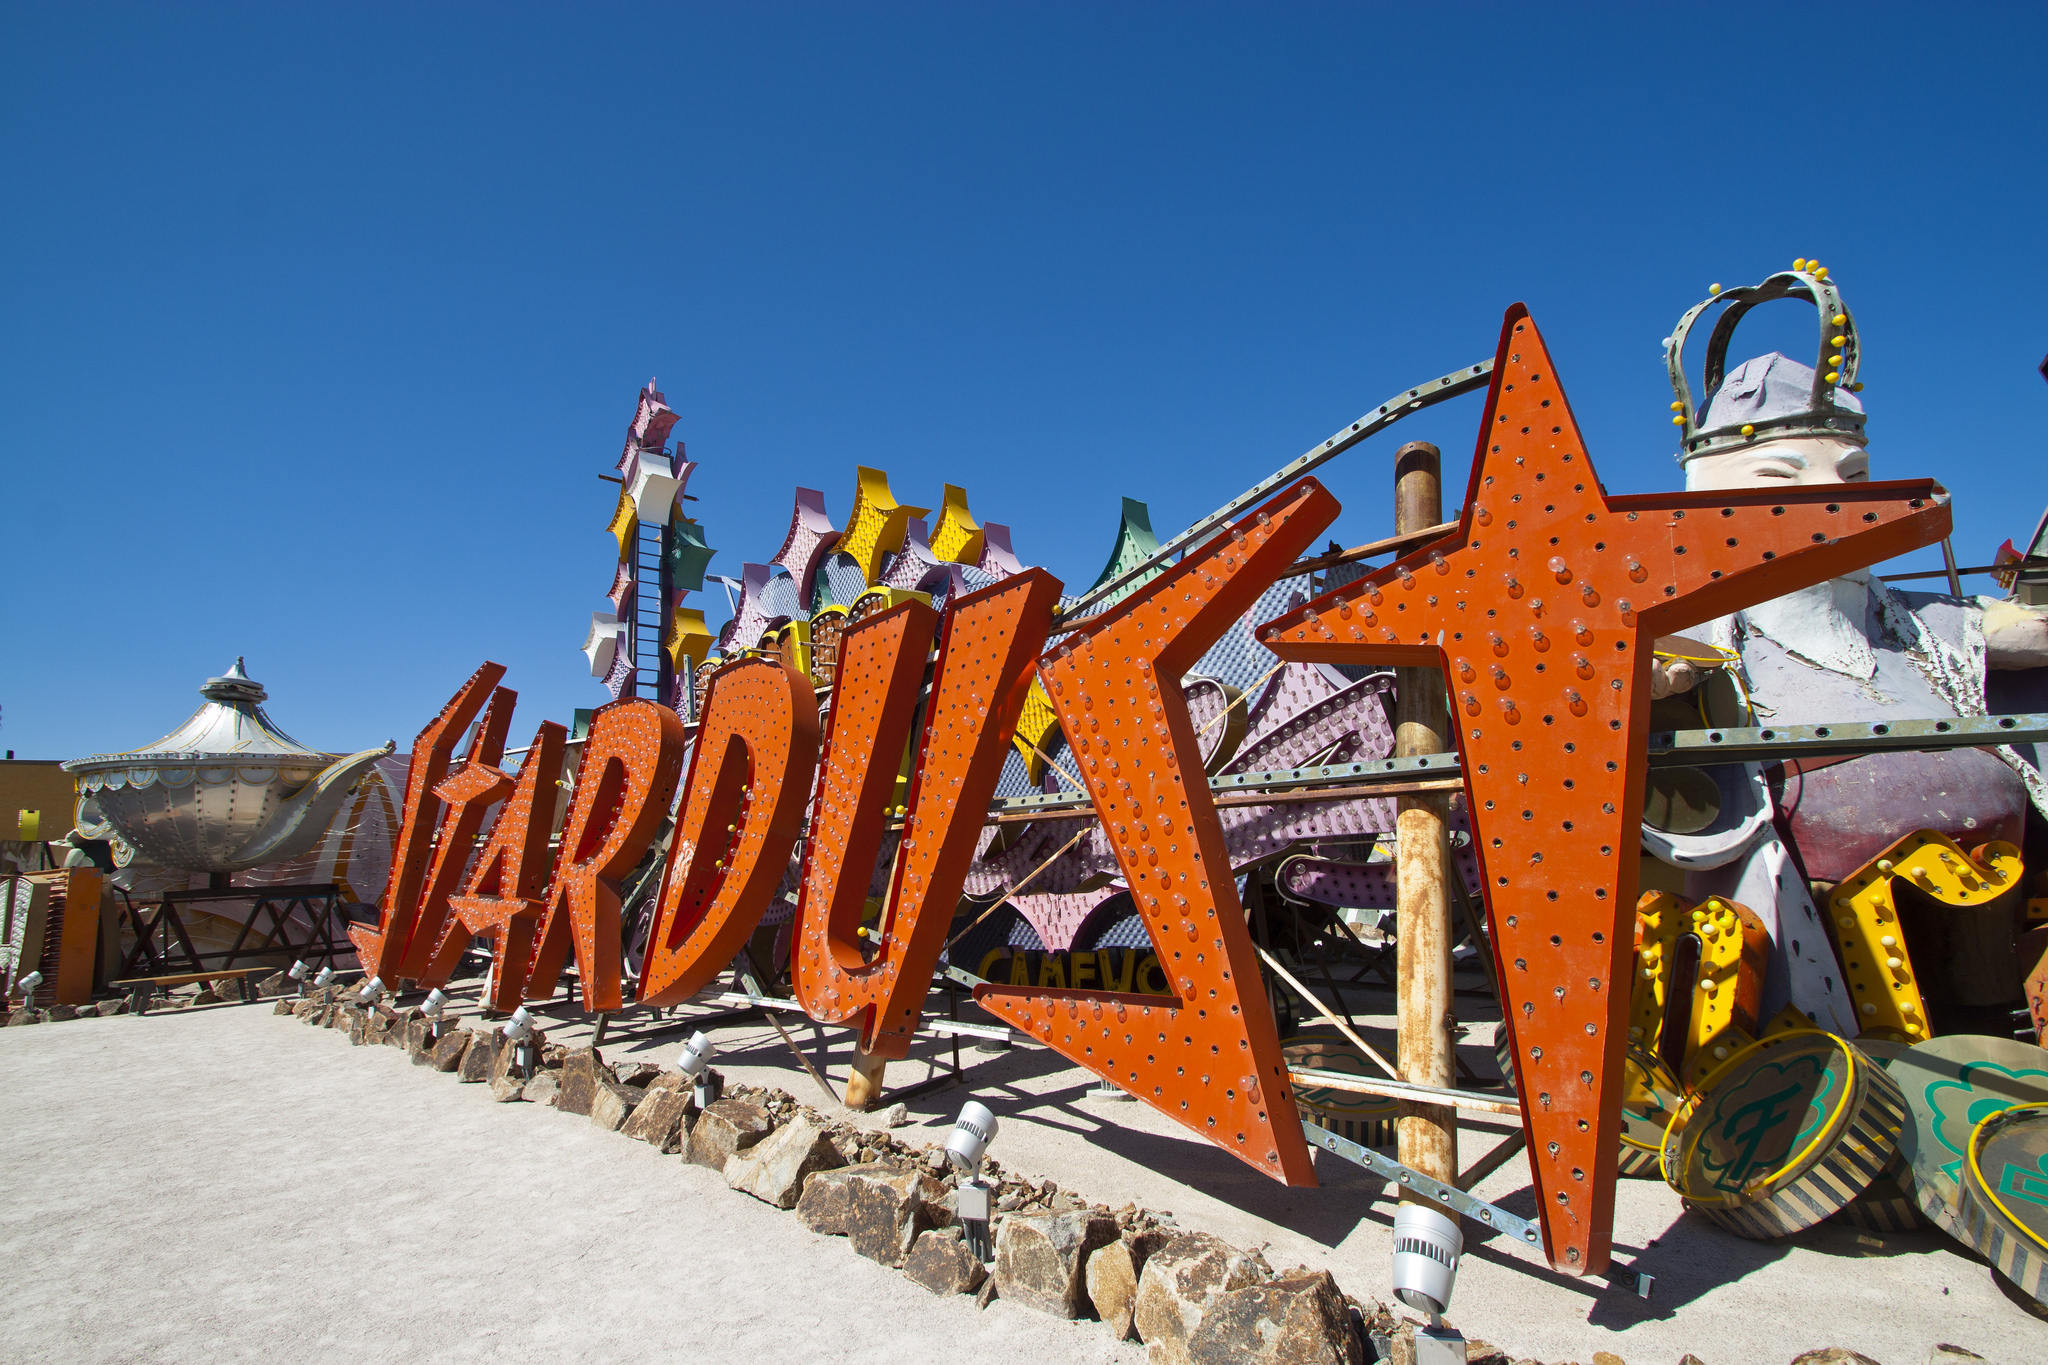 The Boneyard is a must visit when visiting Las Vegas ... photo by CC user gee01 on Flickr